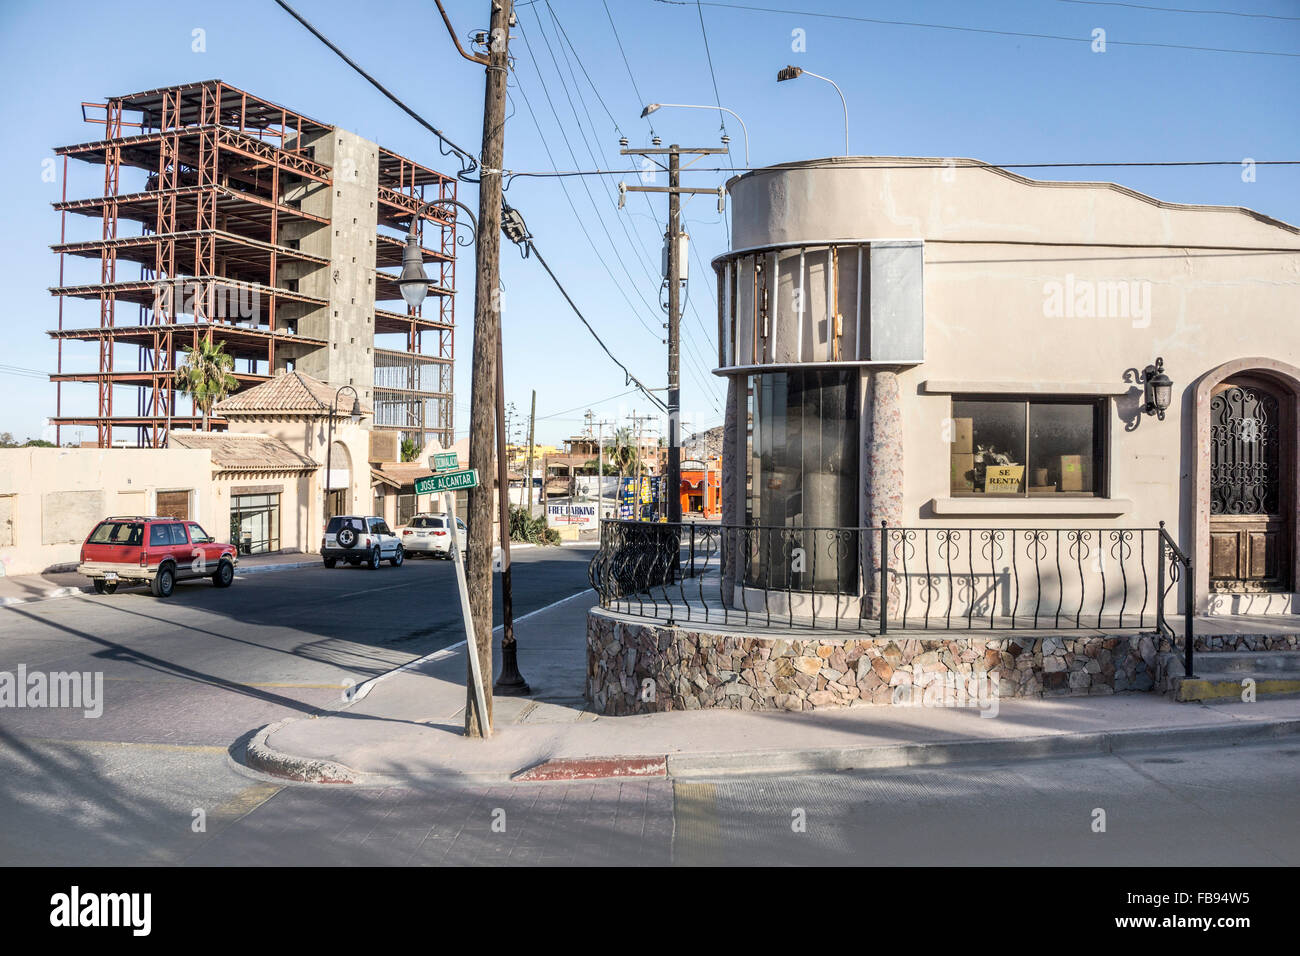 corner building with Art Deco curves crudely altered & now unoccupied & steel frame of abandoned construction - Stock Image